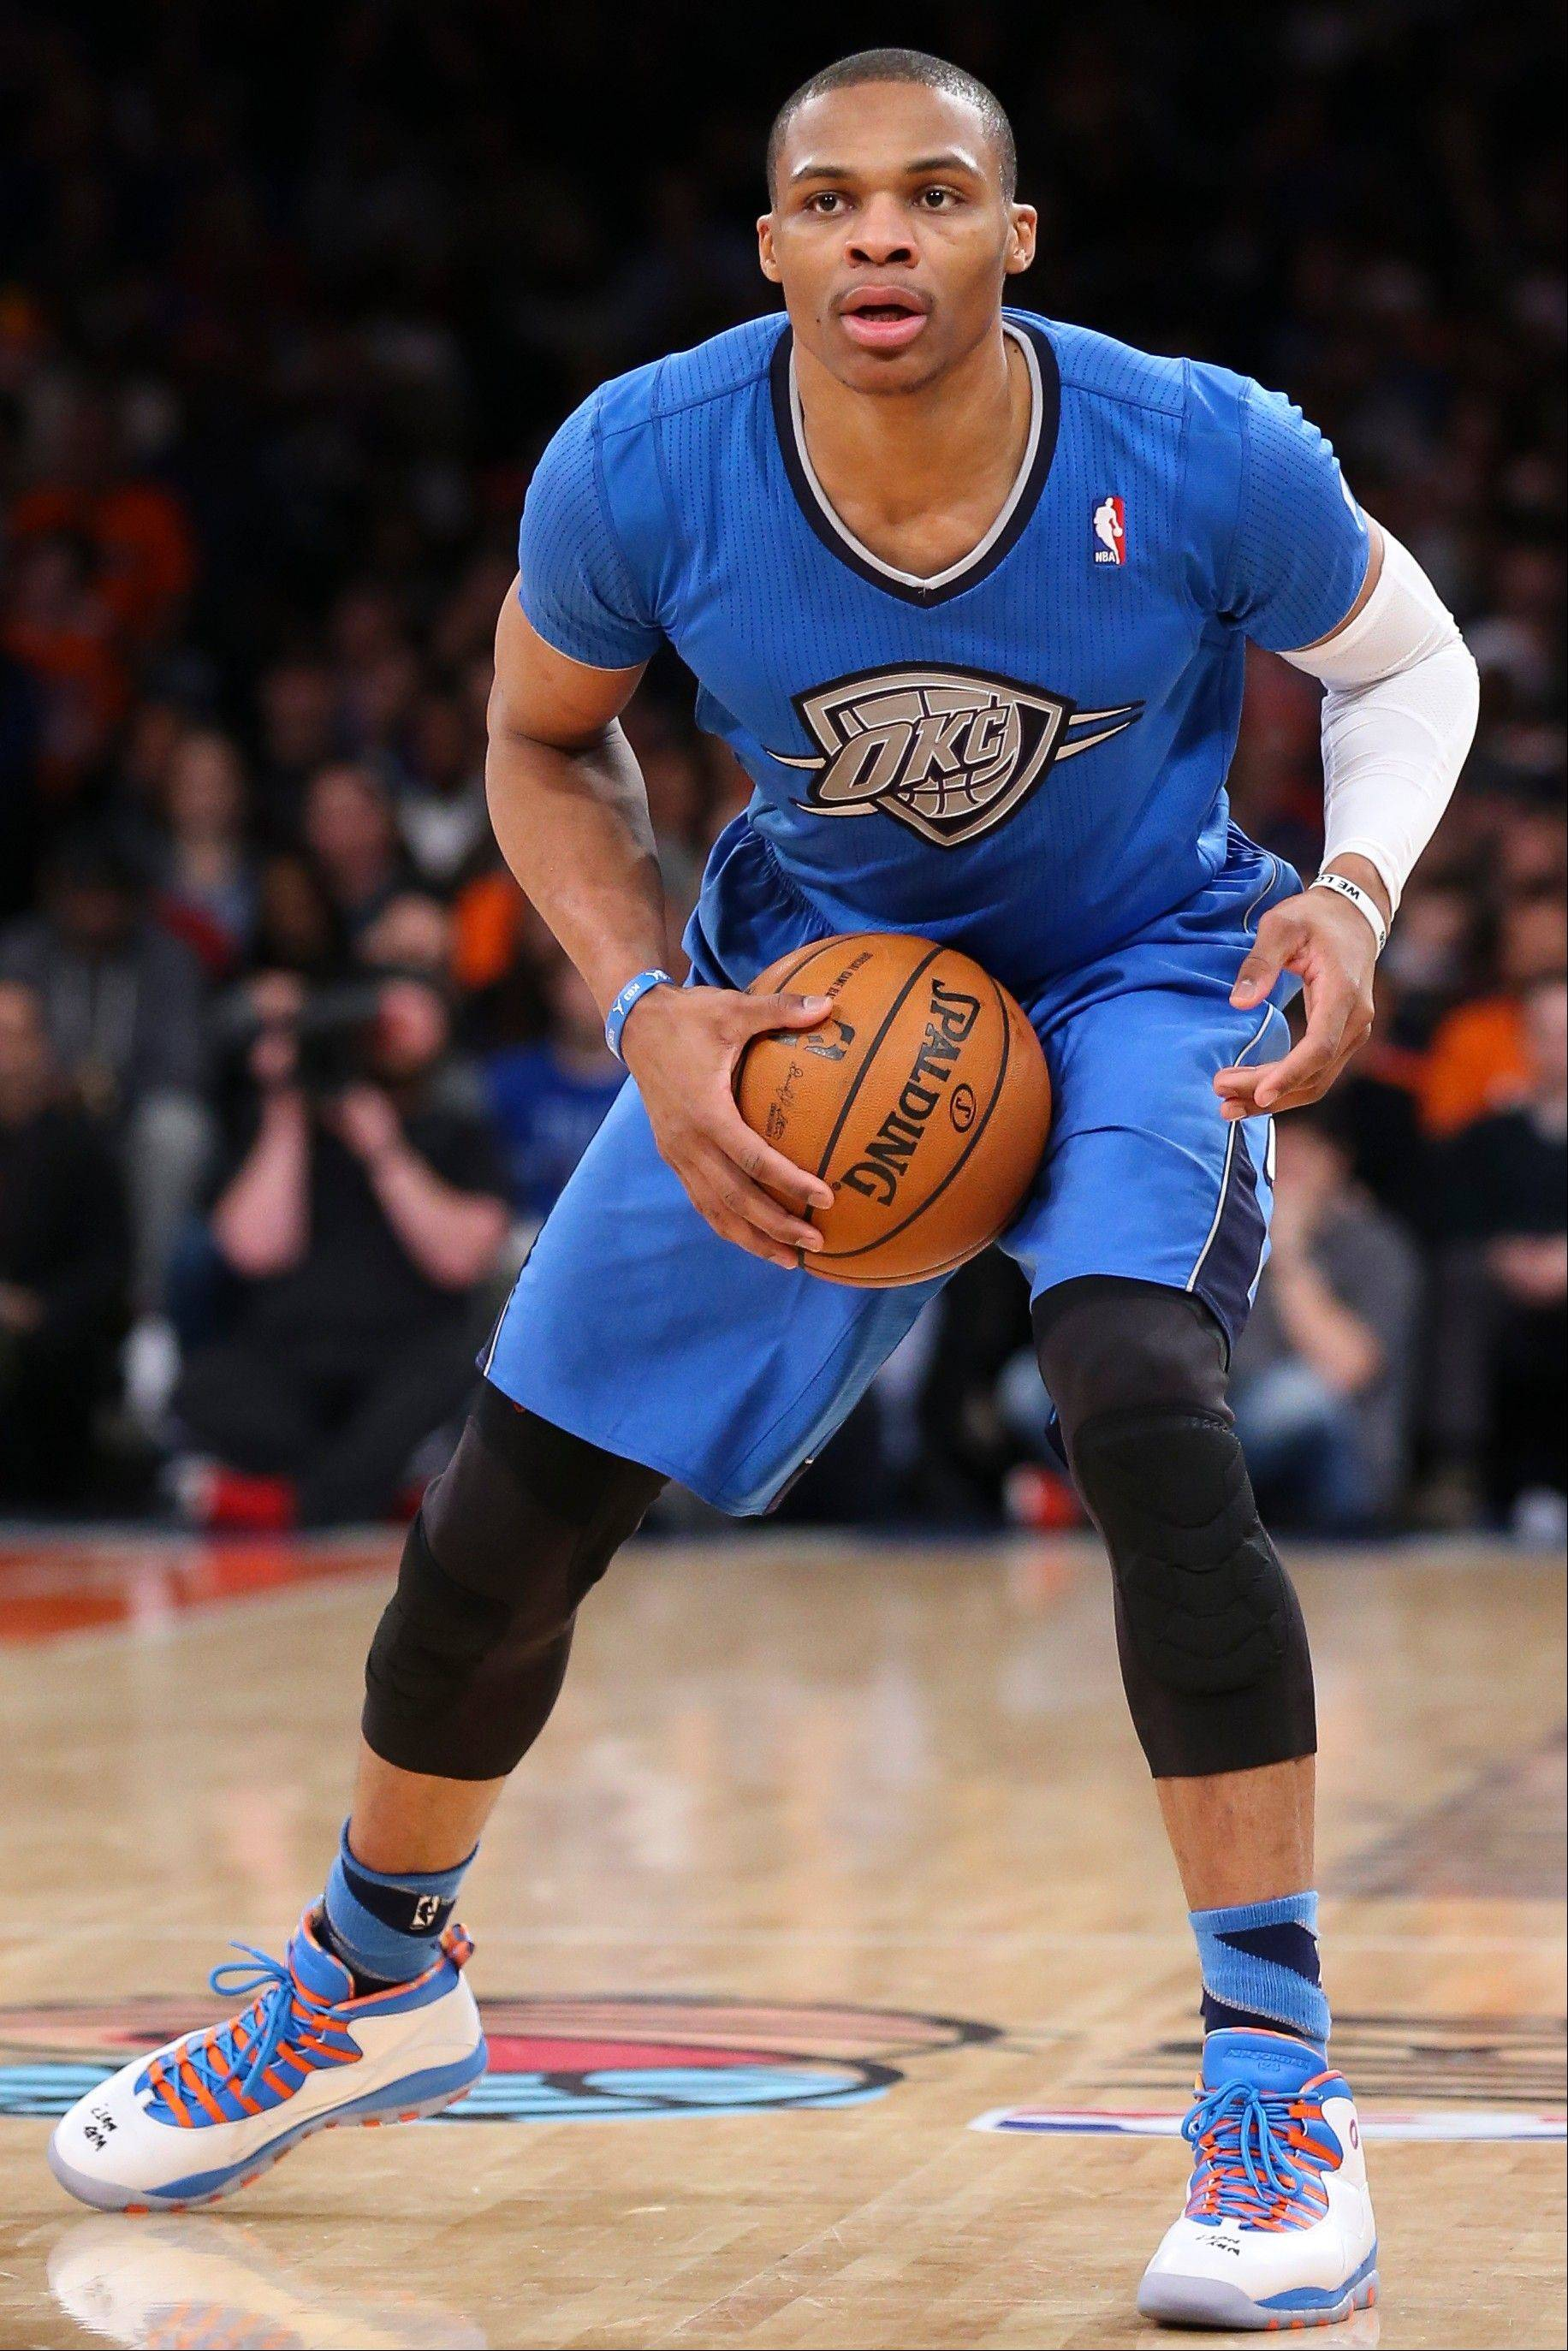 Oklahoma City Thunder guard Russell Westbrook recently had experienced increased swelling in his right knee.